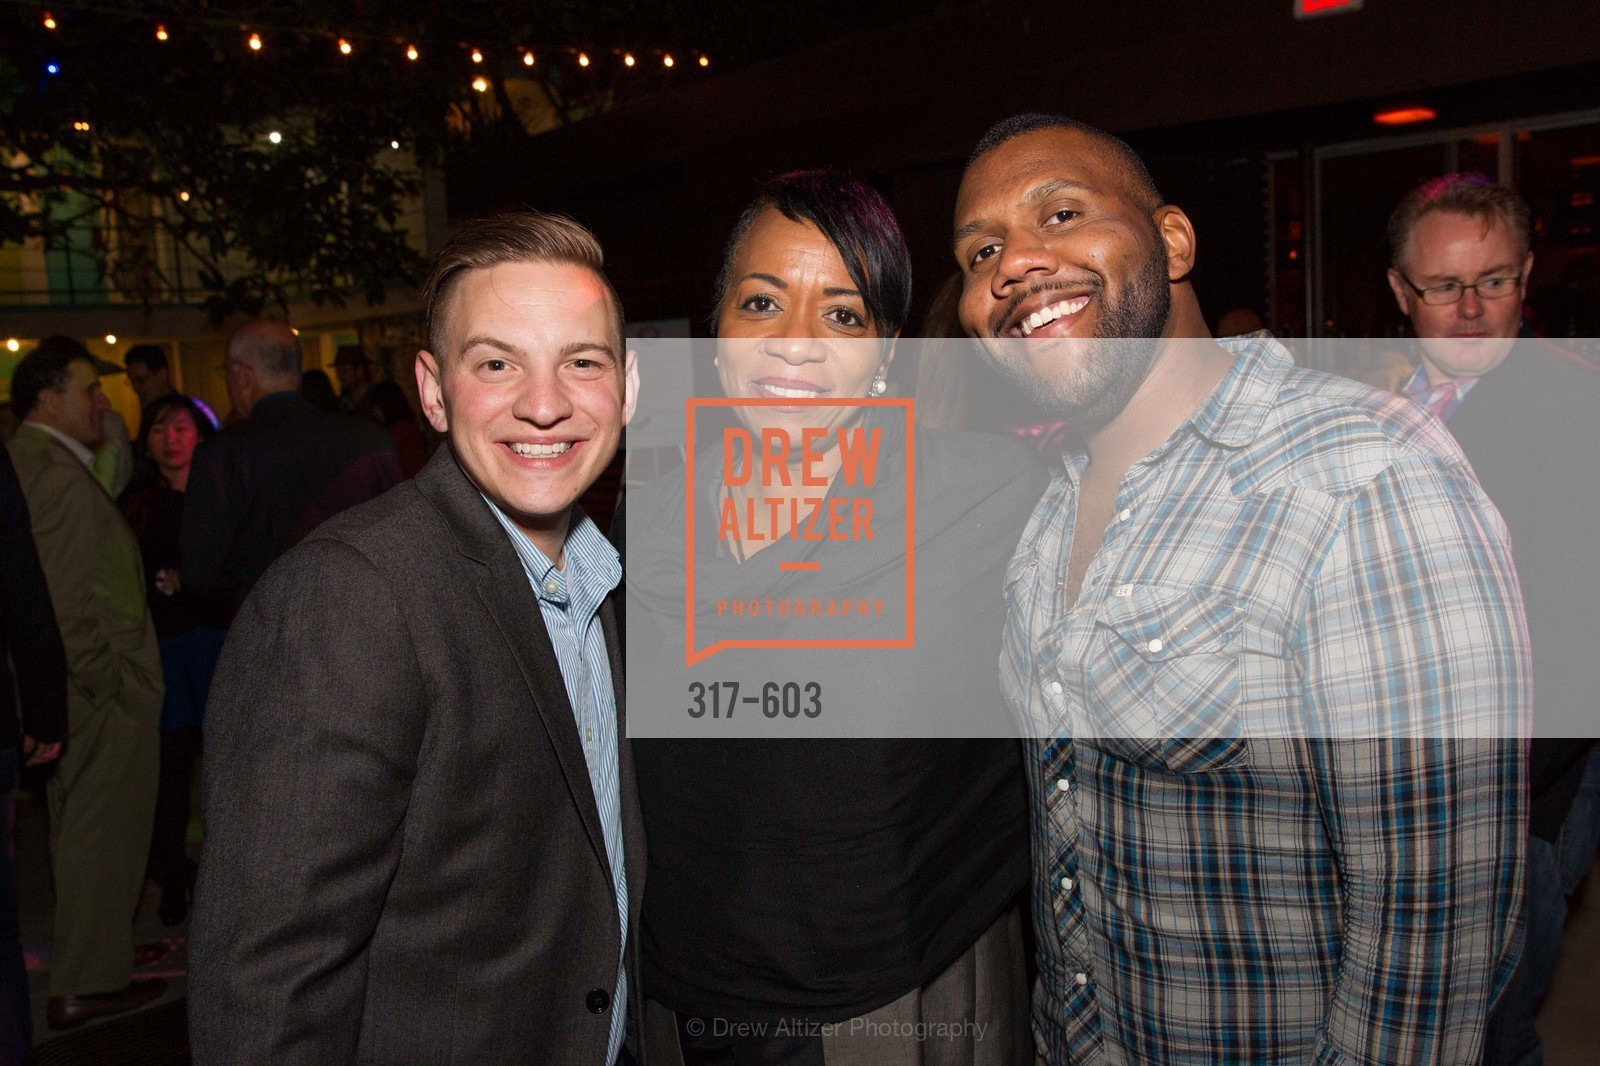 Dan Kreiter, Cheryl Addleman, Brandon Clements, 22nd Annual TNDC CELEBRITY POOL TOSS, US, October 8th, 2014,Drew Altizer, Drew Altizer Photography, full-service agency, private events, San Francisco photographer, photographer california